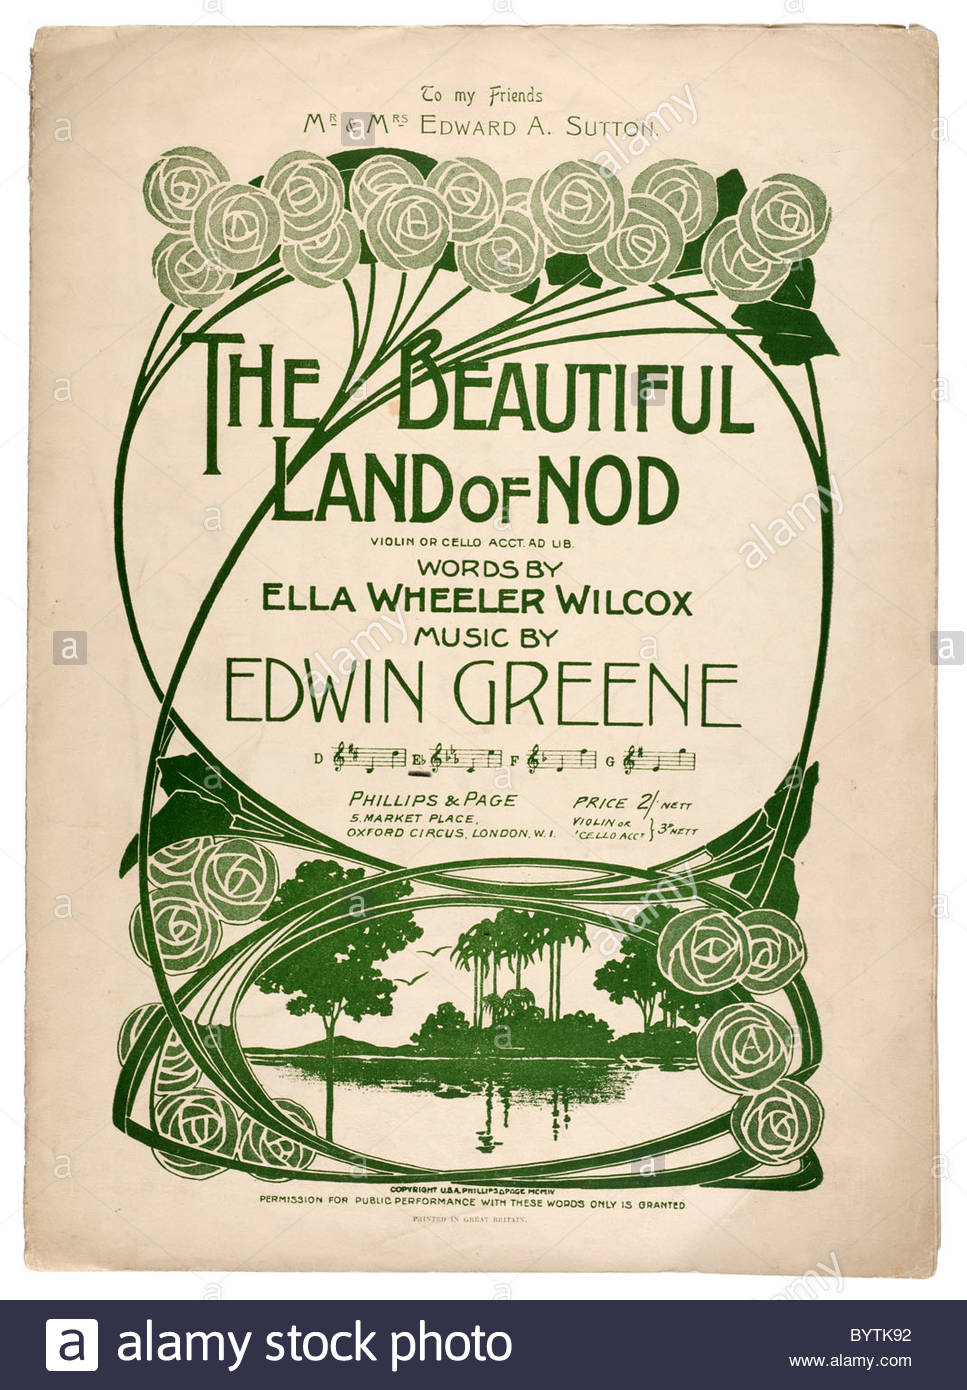 Old sheet music front cover from 1904 titled 'The Beautiful Land of Nod'  violin or cello acct. Ad Lib. - Stock Image